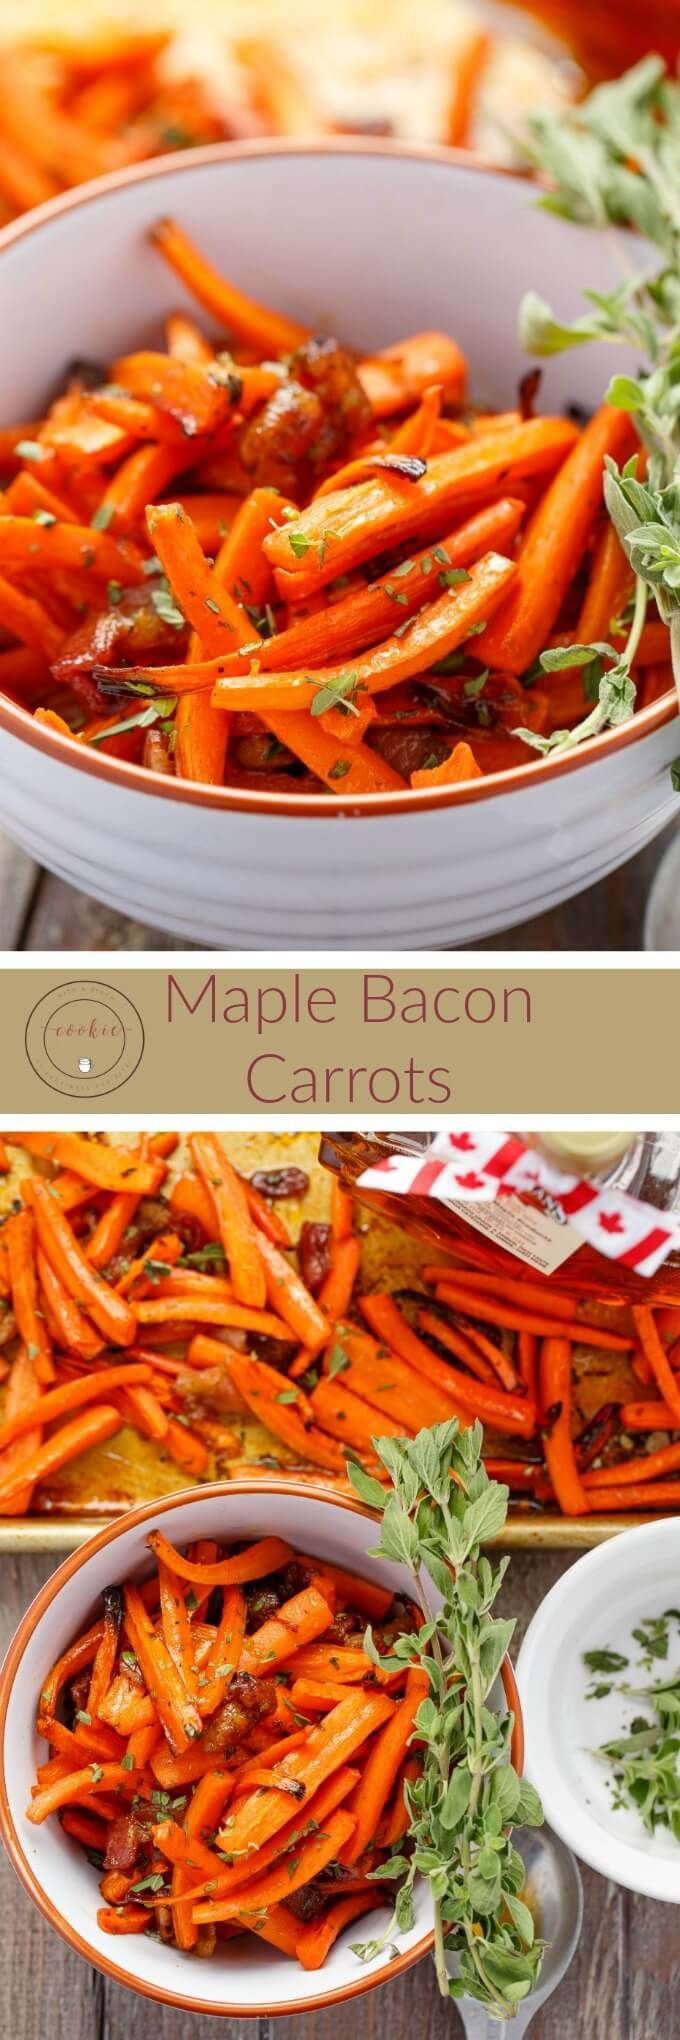 Maple Bacon Carrots